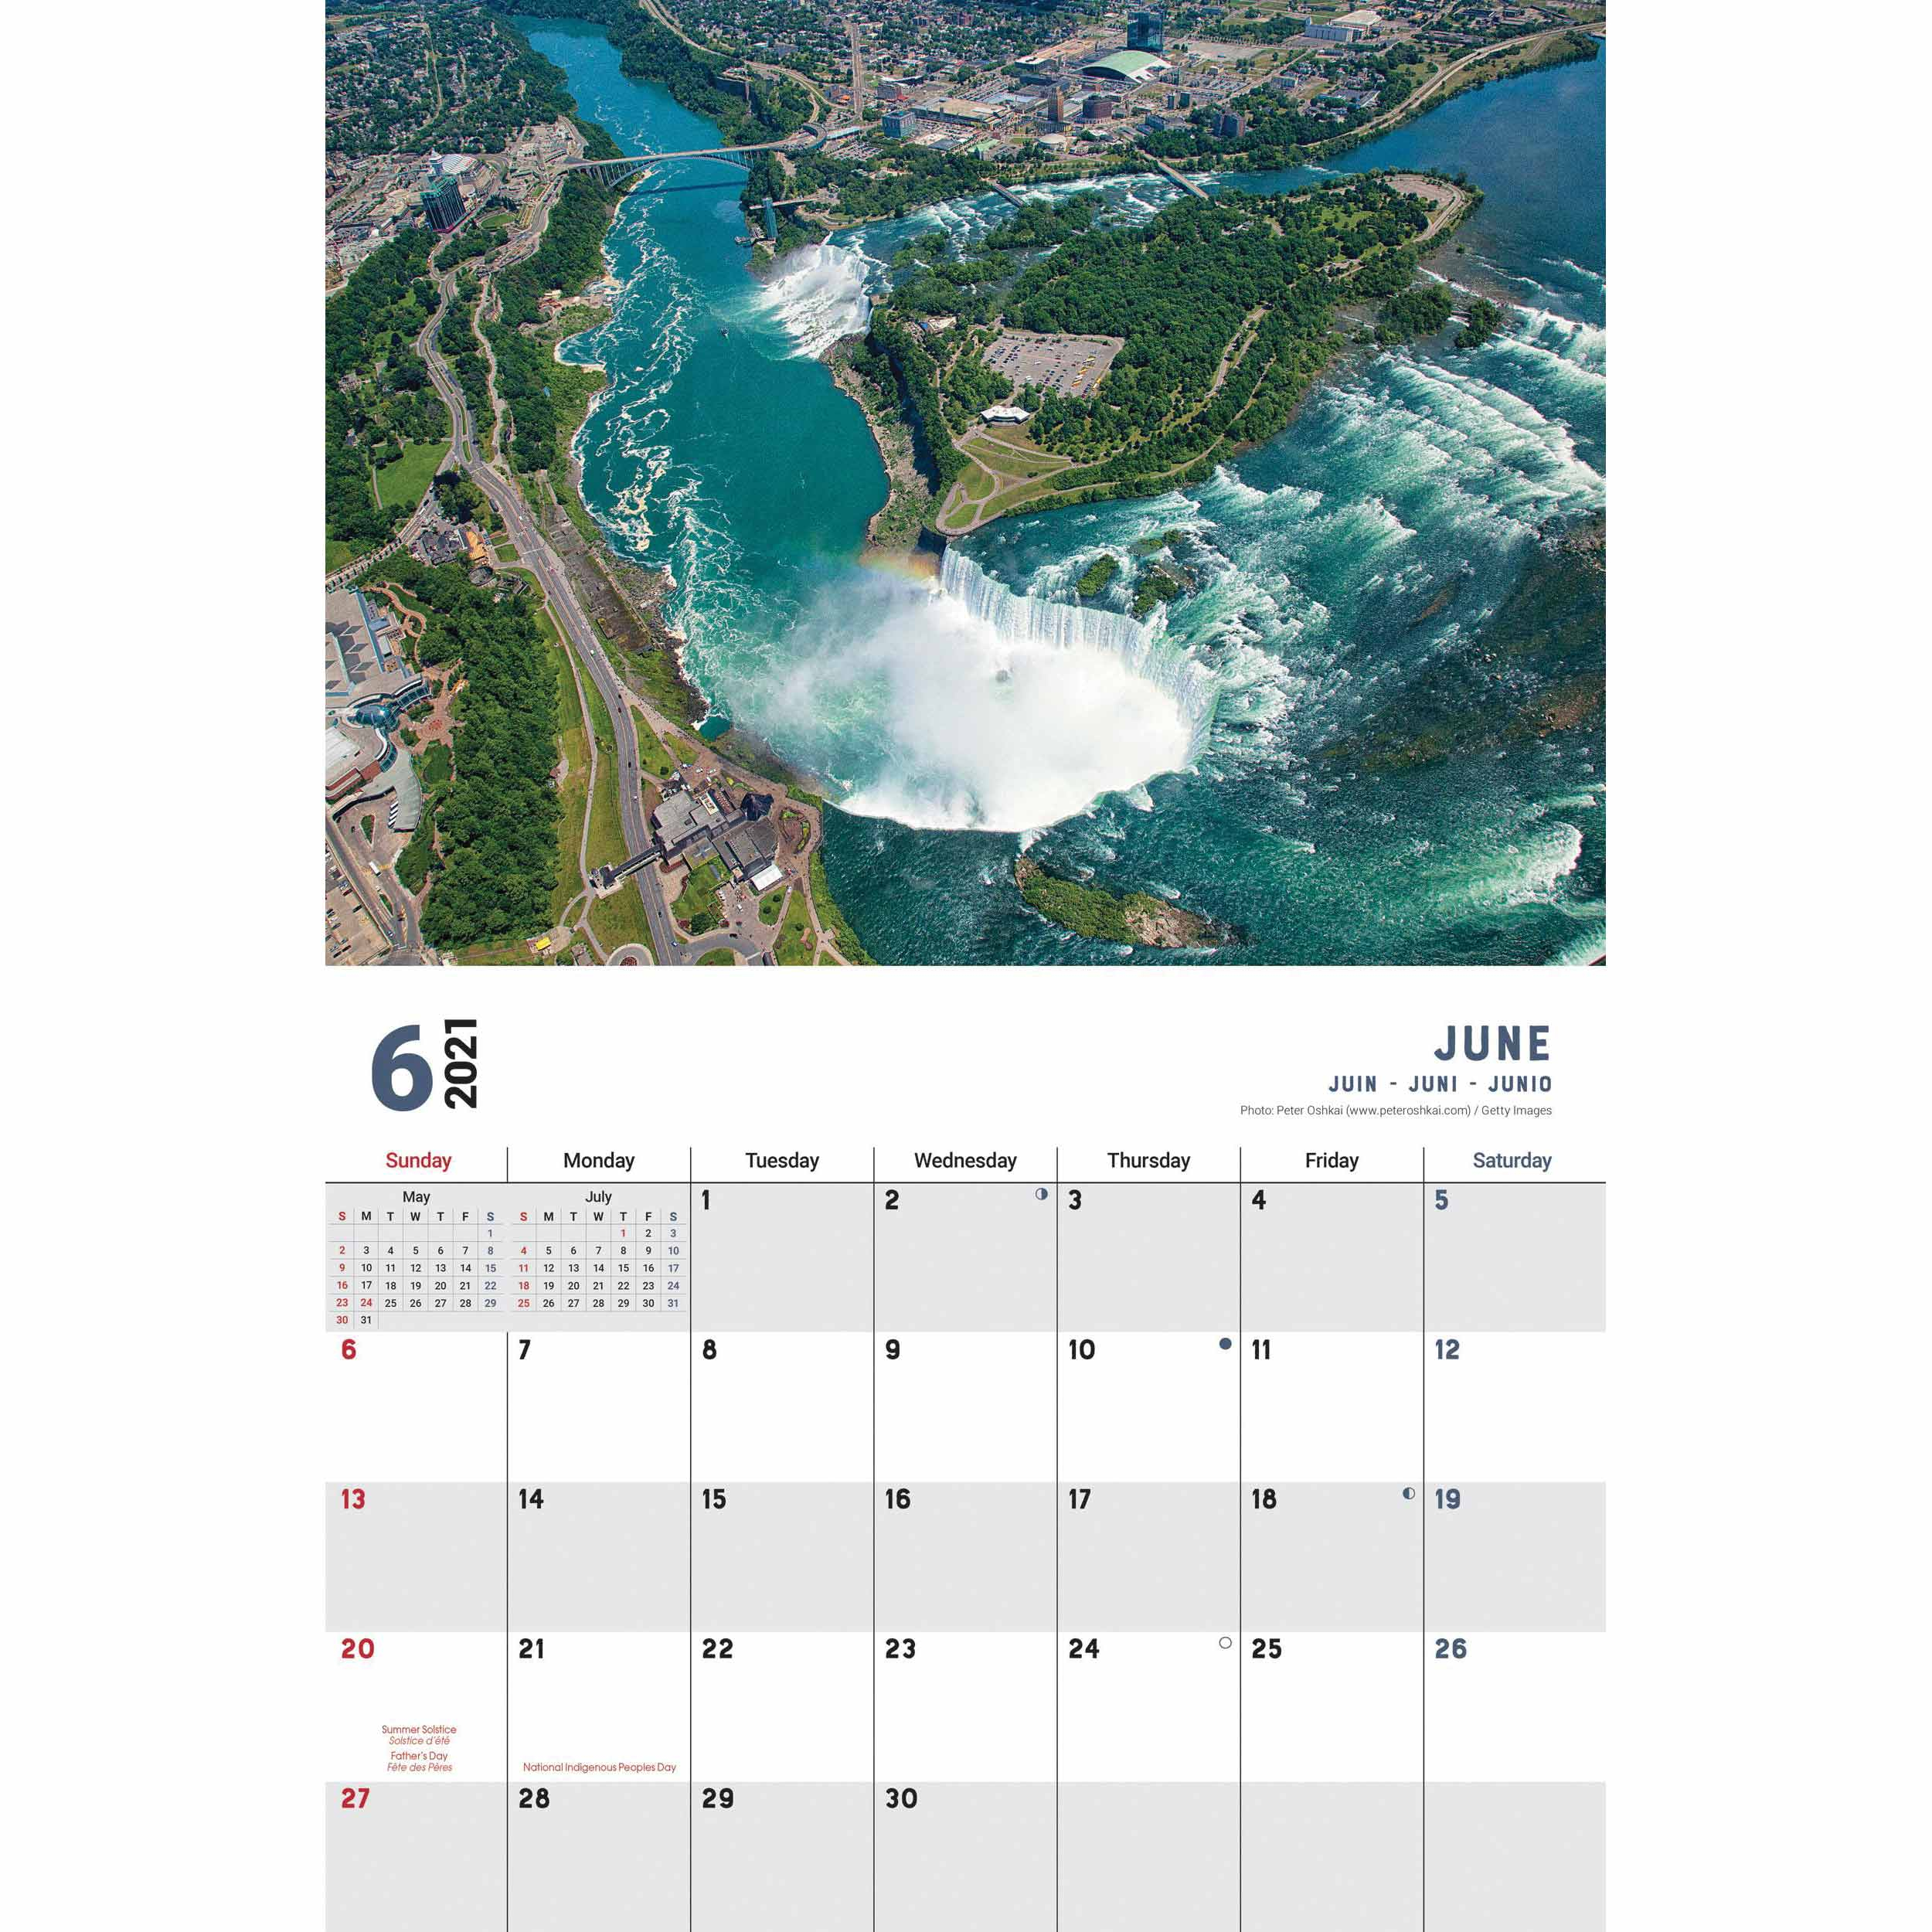 Niagara Falls A4 Calendar 2021 At Calendar Club With Regard To Niagara Falls School Calendar 2021